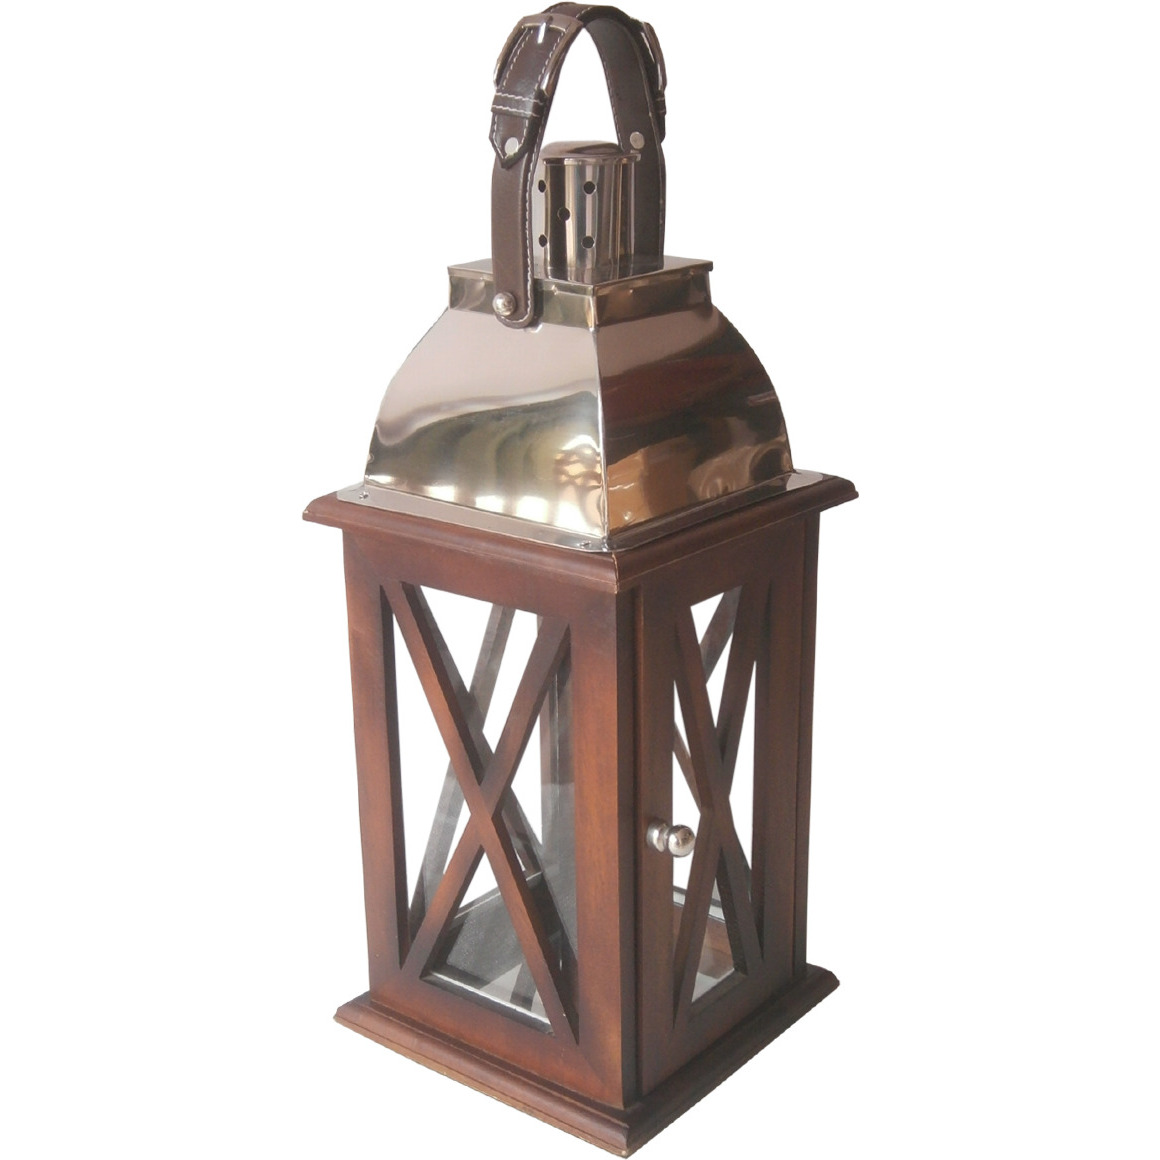 Golmaalshop Metal Top Lantern